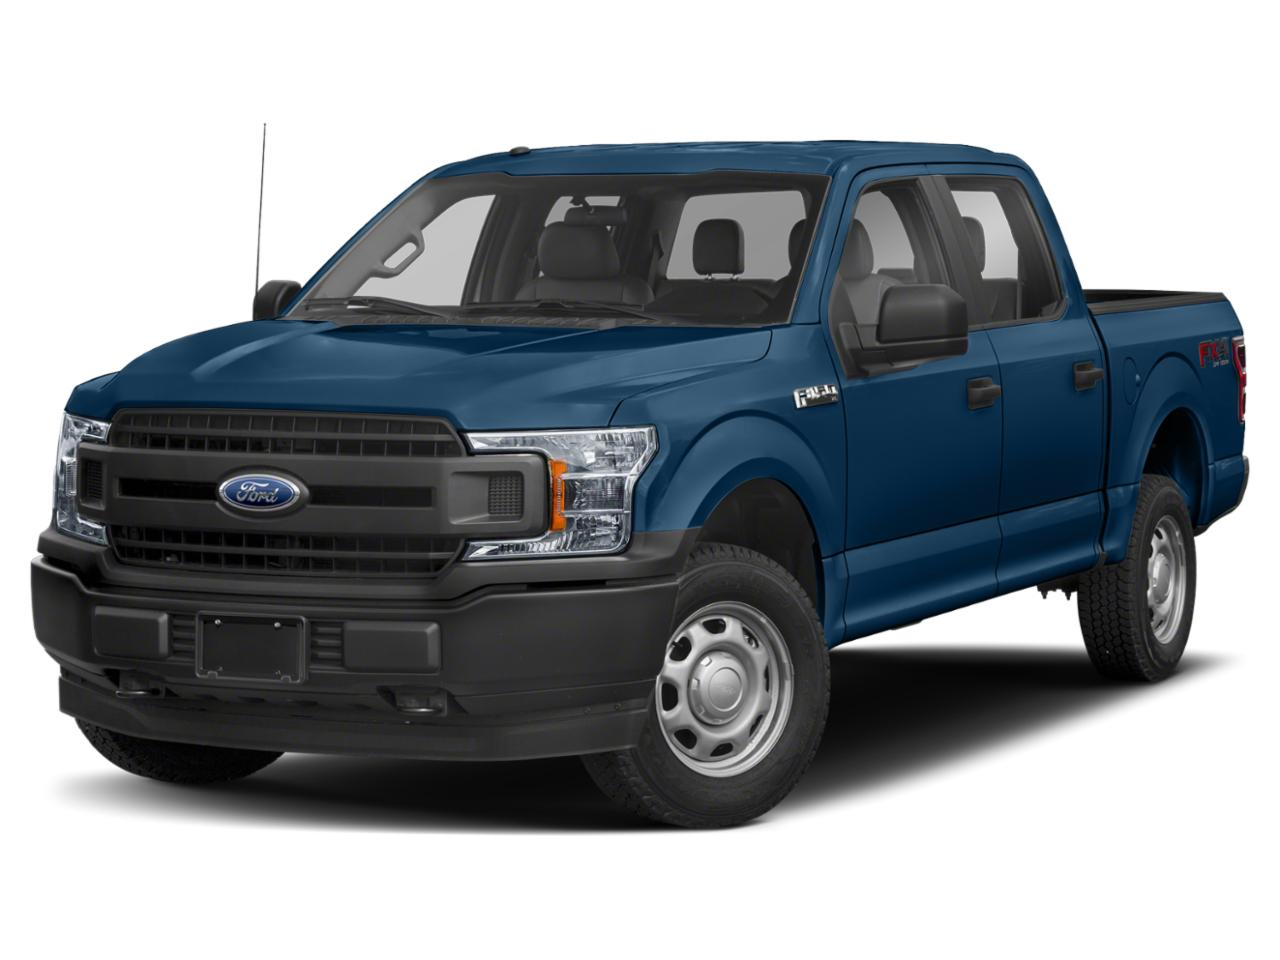 2018 Ford F-150 Vehicle Photo in Emporia, VA 23847